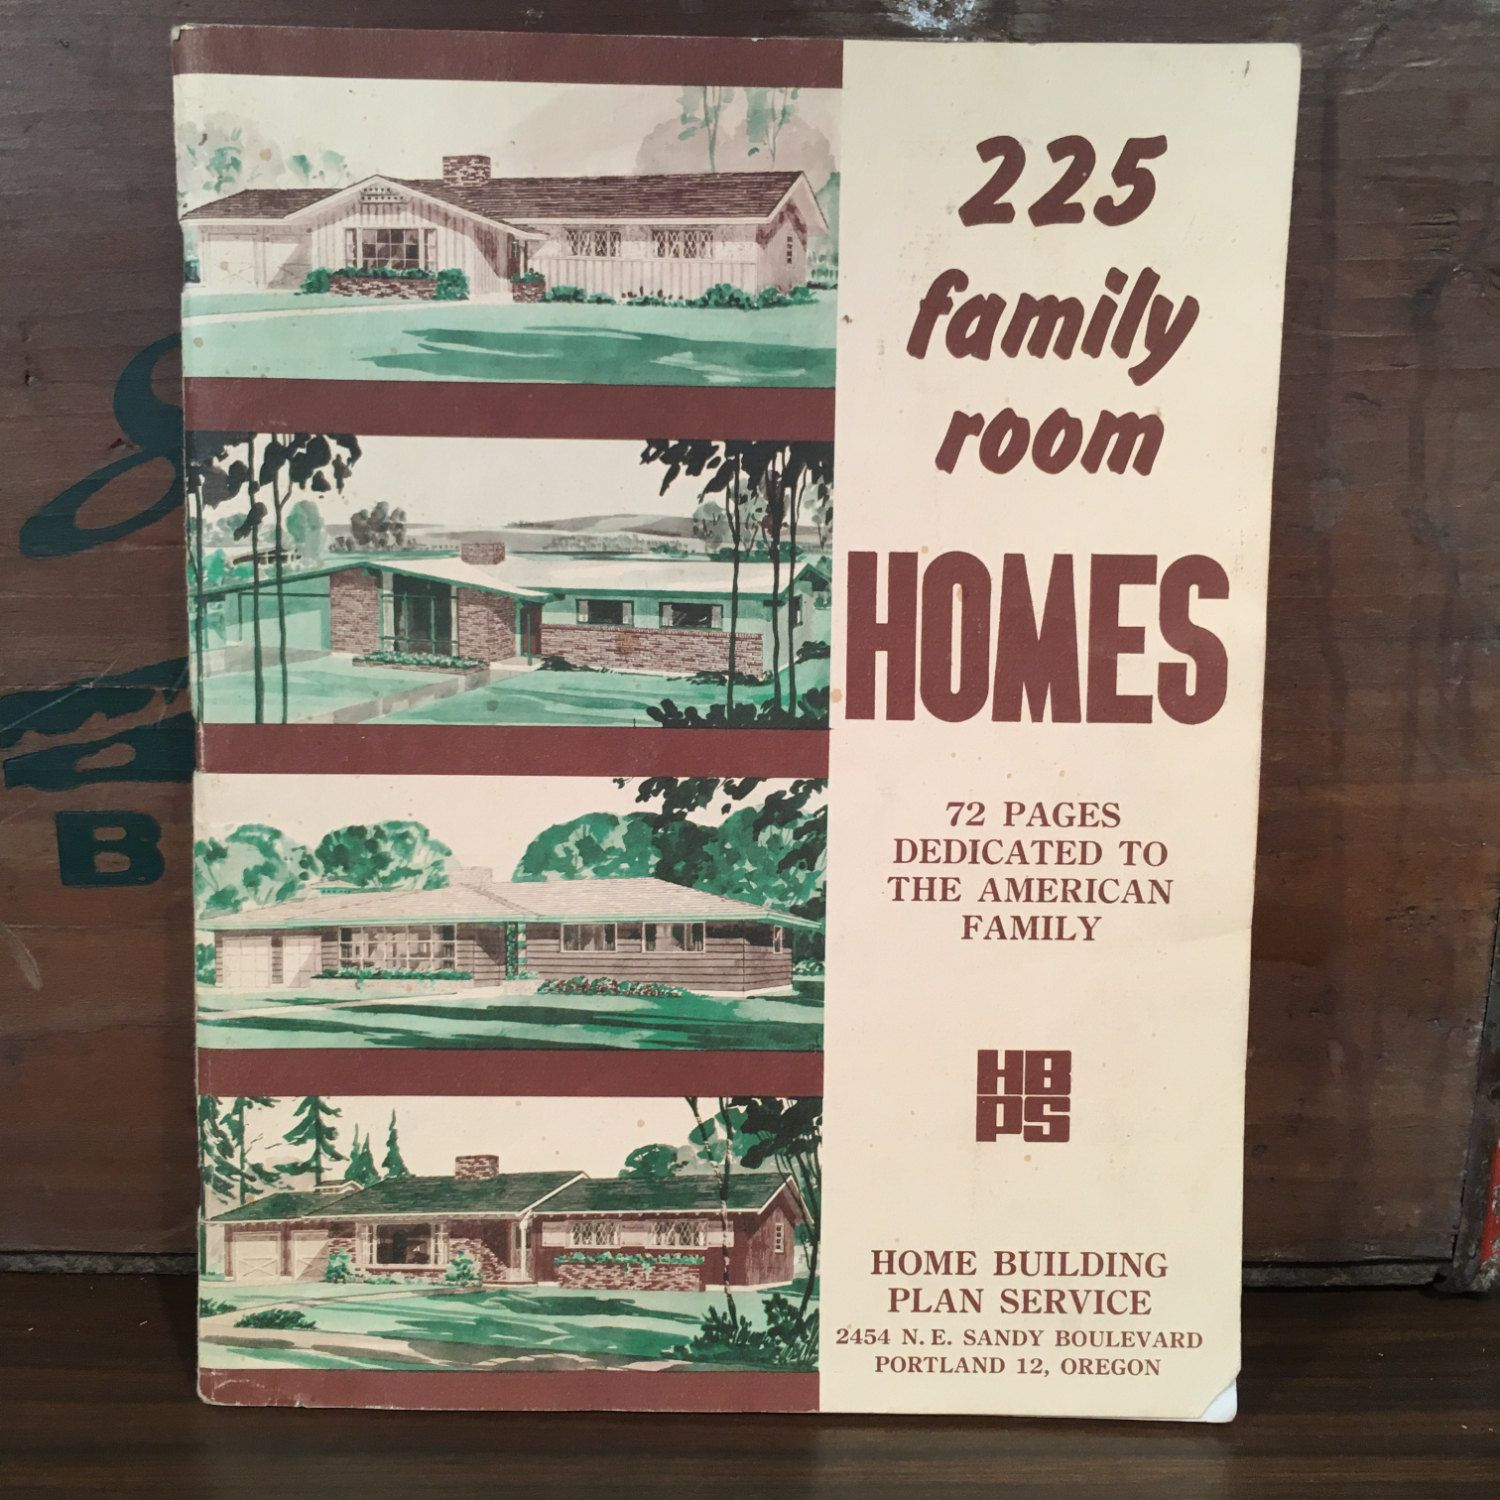 225 family room homes 1959 home building plan service vintage mid 225 family room homes 1959 home building plan service vintage mid century house blueprint catalog portland oregon malvernweather Image collections